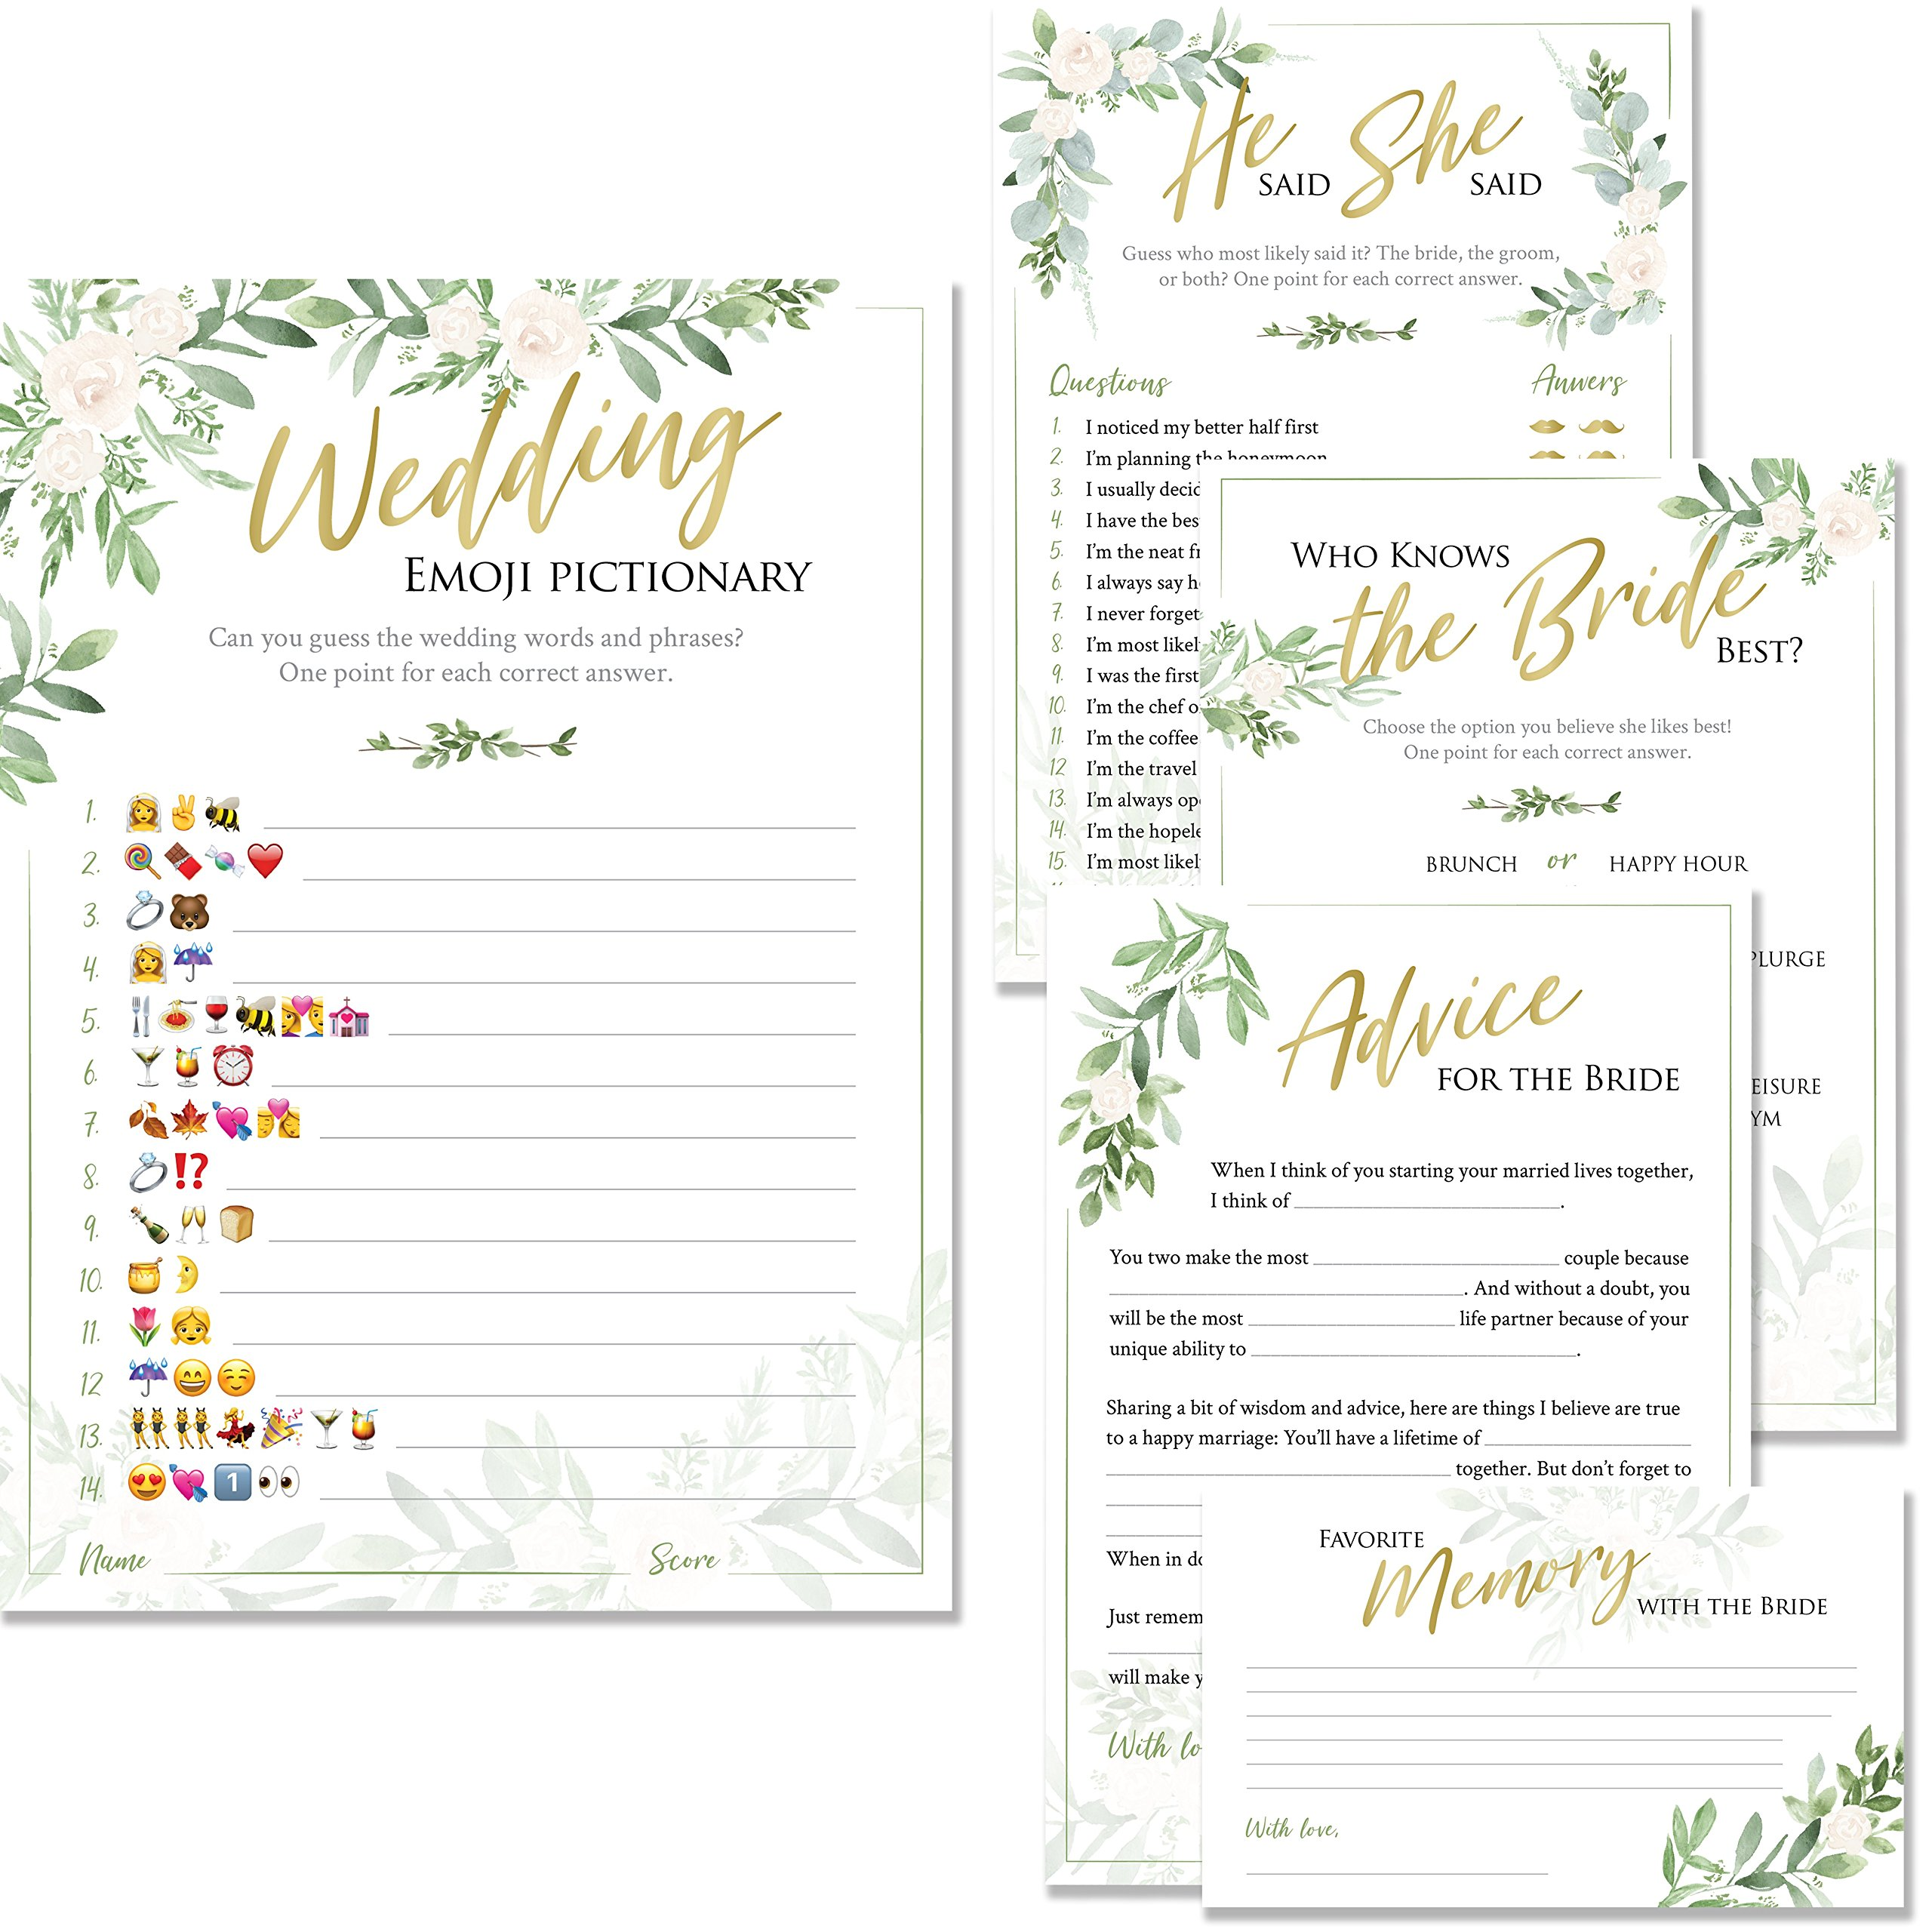 Bridal Shower Games | Set of 5 Games | 50 Sheets Each | Floral Rustic Greenery Themed | Includes Marriage Advice Cards, Emoji Game, and Favorite Memory